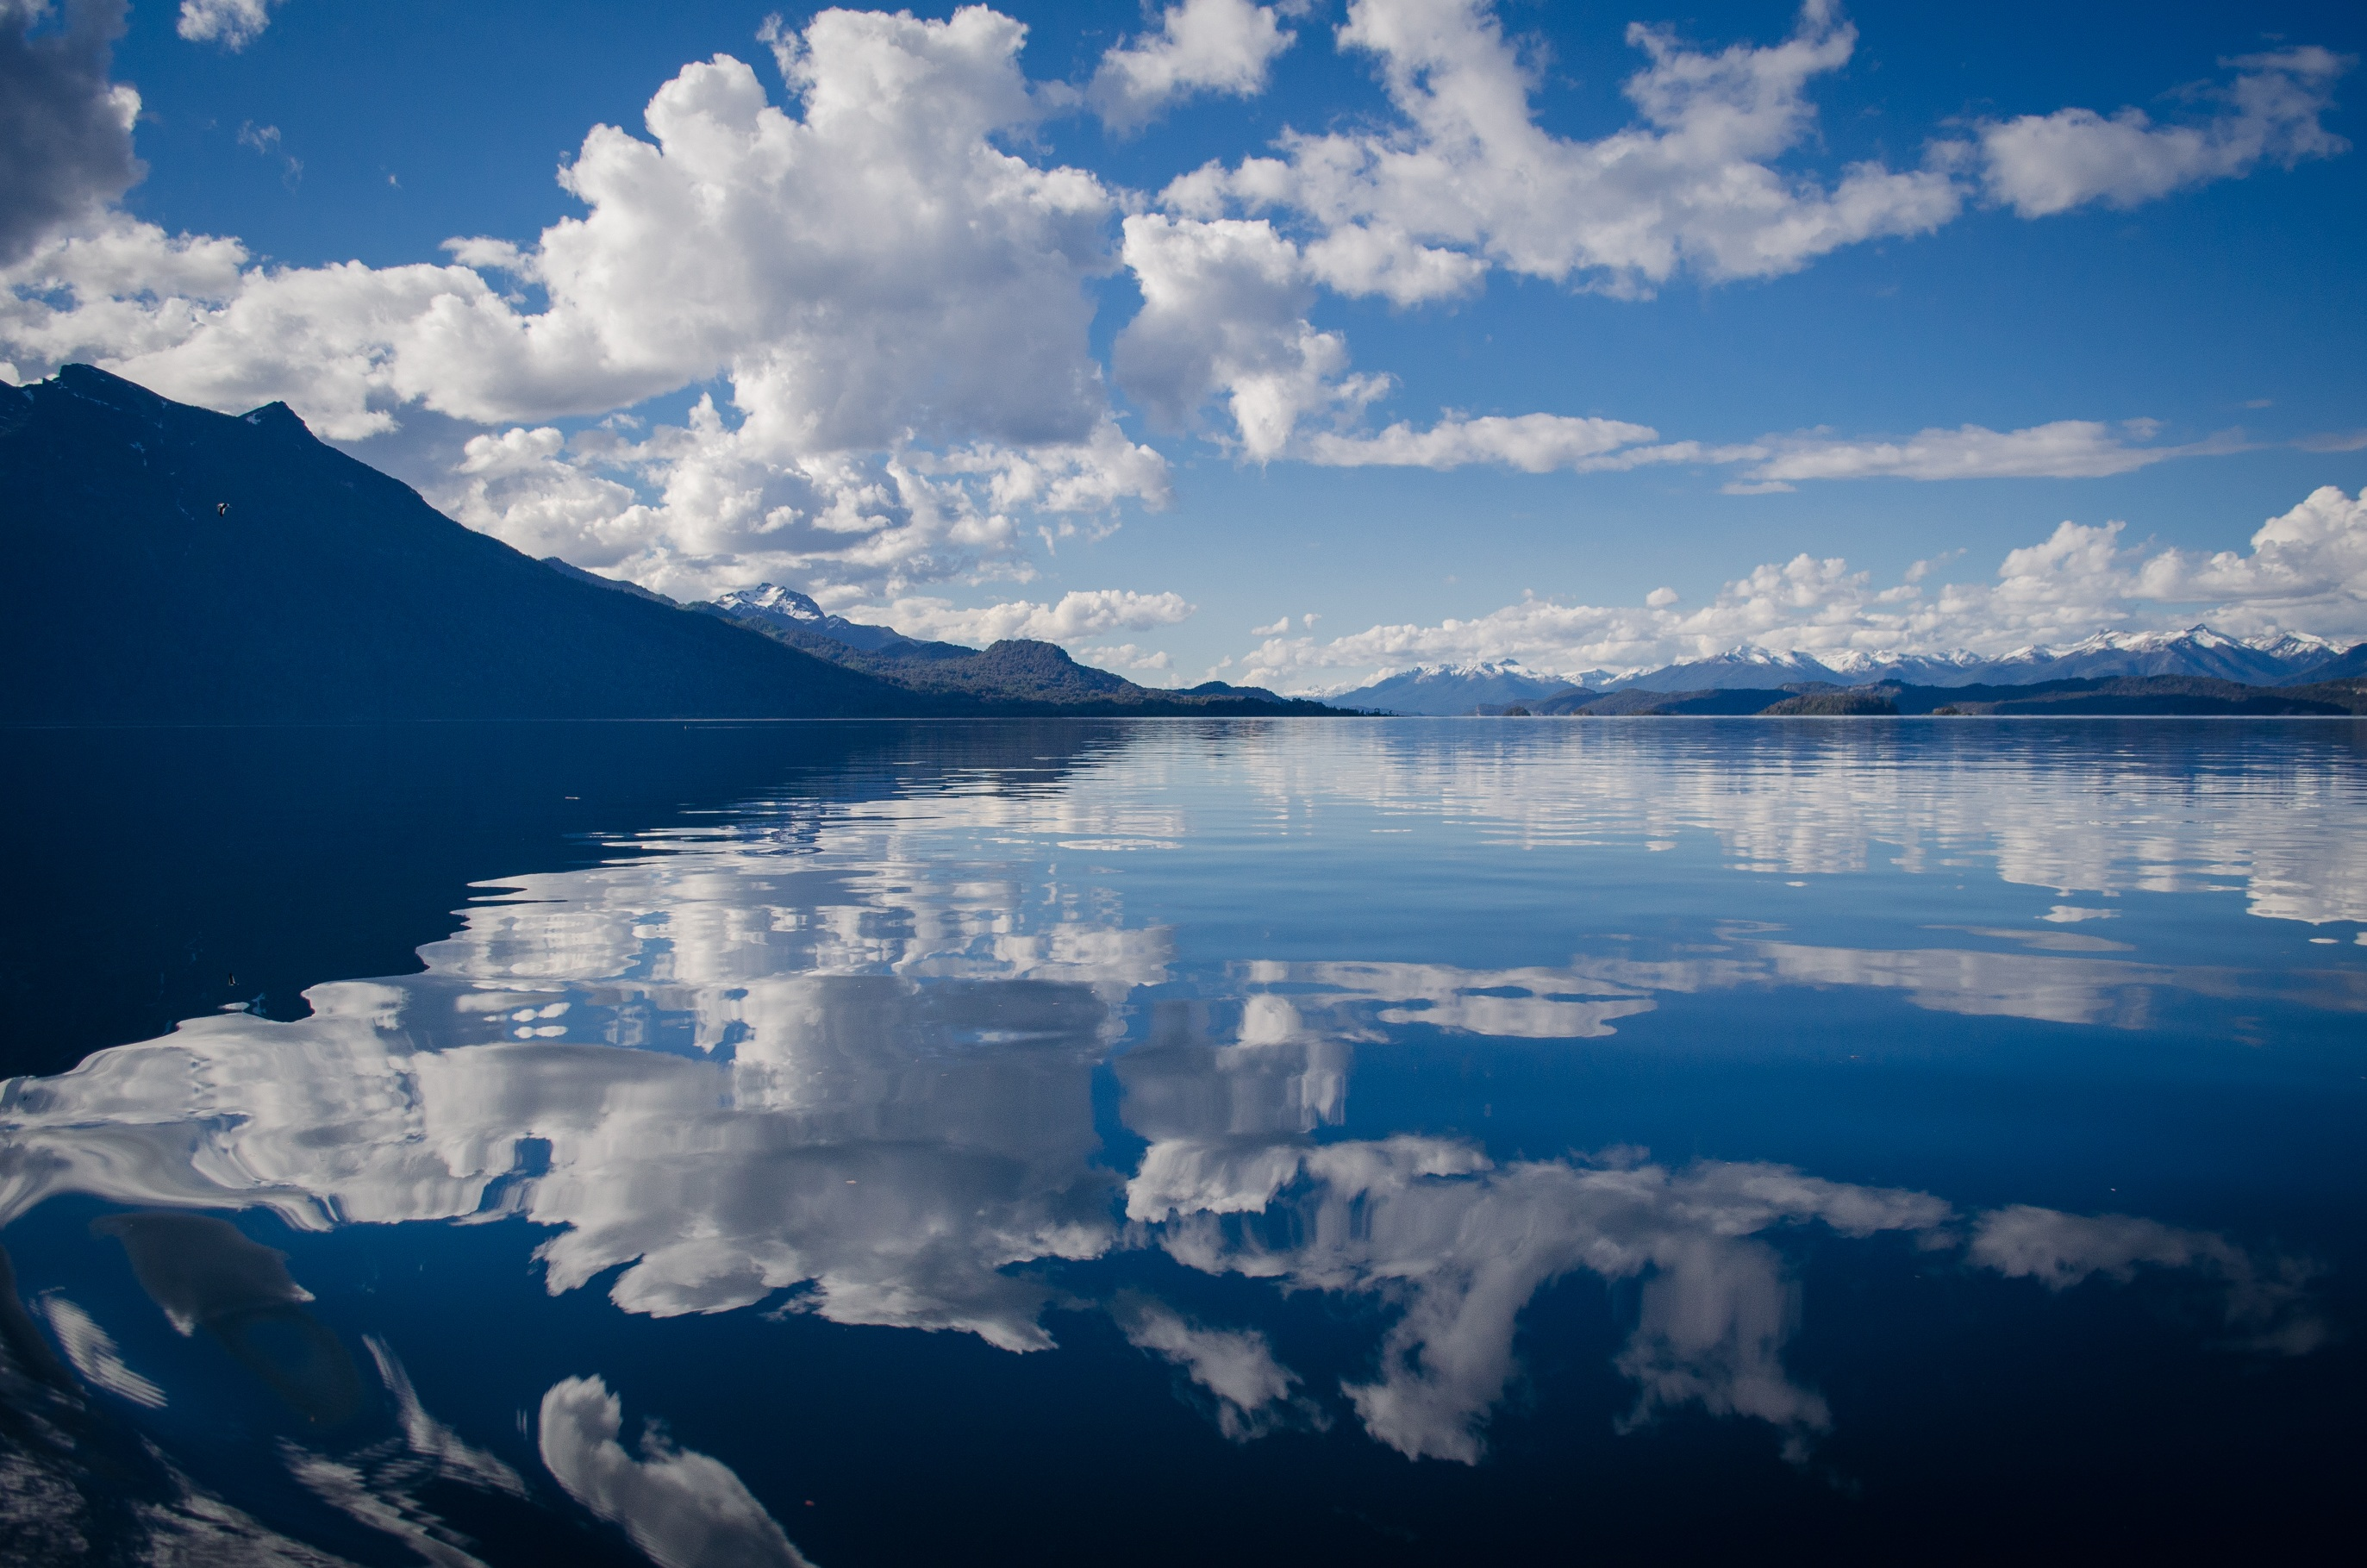 Lake Water Under White and Blue Skies during Daytime · Free Stock ... Reflection